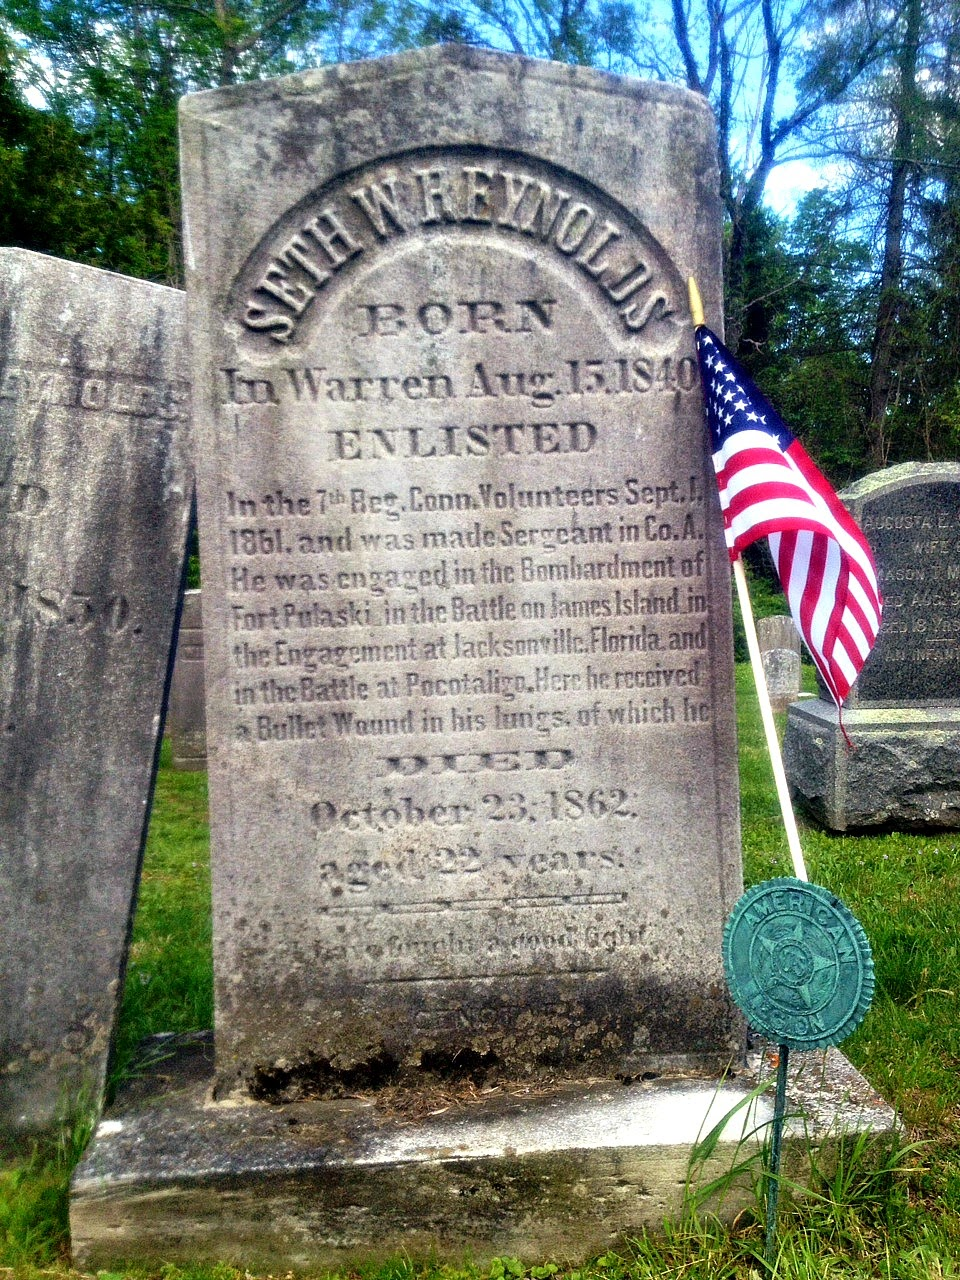 john banks civil war blog connecticut memorial day photo essay even the cause of death is provided on 7th connecticut sergeant seth w reynolds marker in warren cemetery a bullet wound to the lungs during the battle